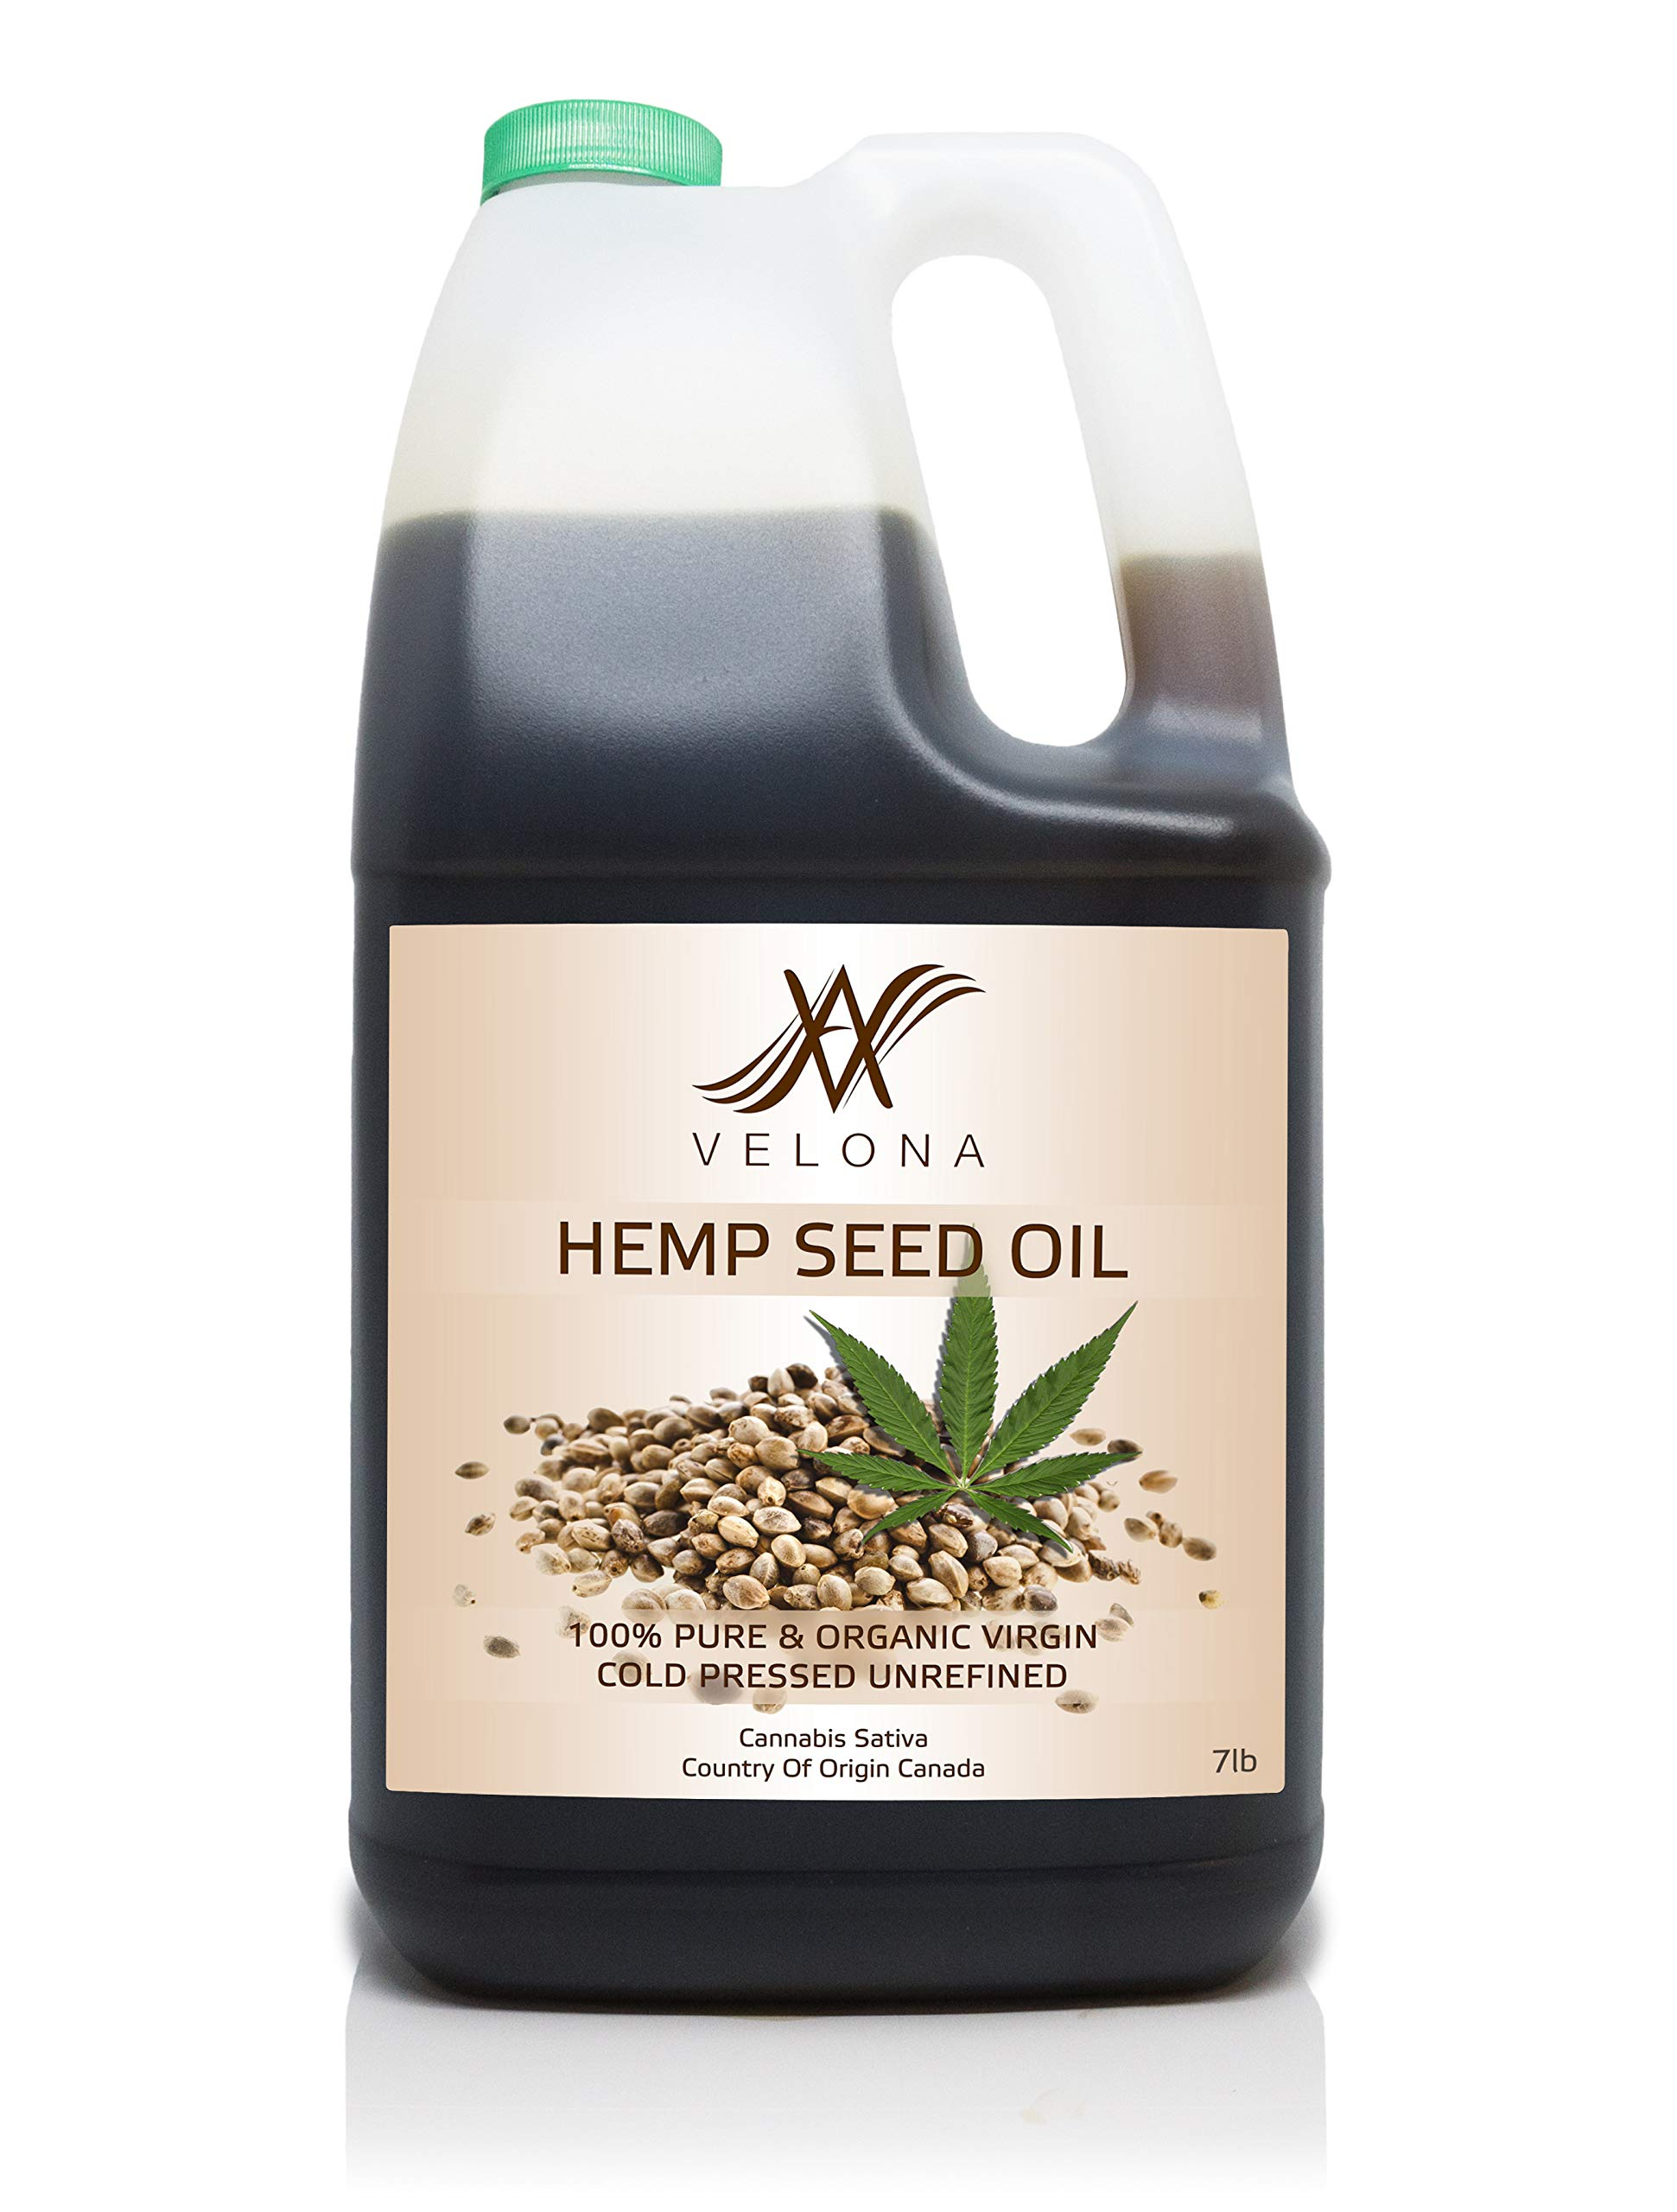 100% HEMP SEED OIL by Velona | All Natural CLEAR CARRIER Oil for Body, Skin & Hair Care and Pain Relief | Unrefined, Cold Pressed, Row | Size: 7 LB